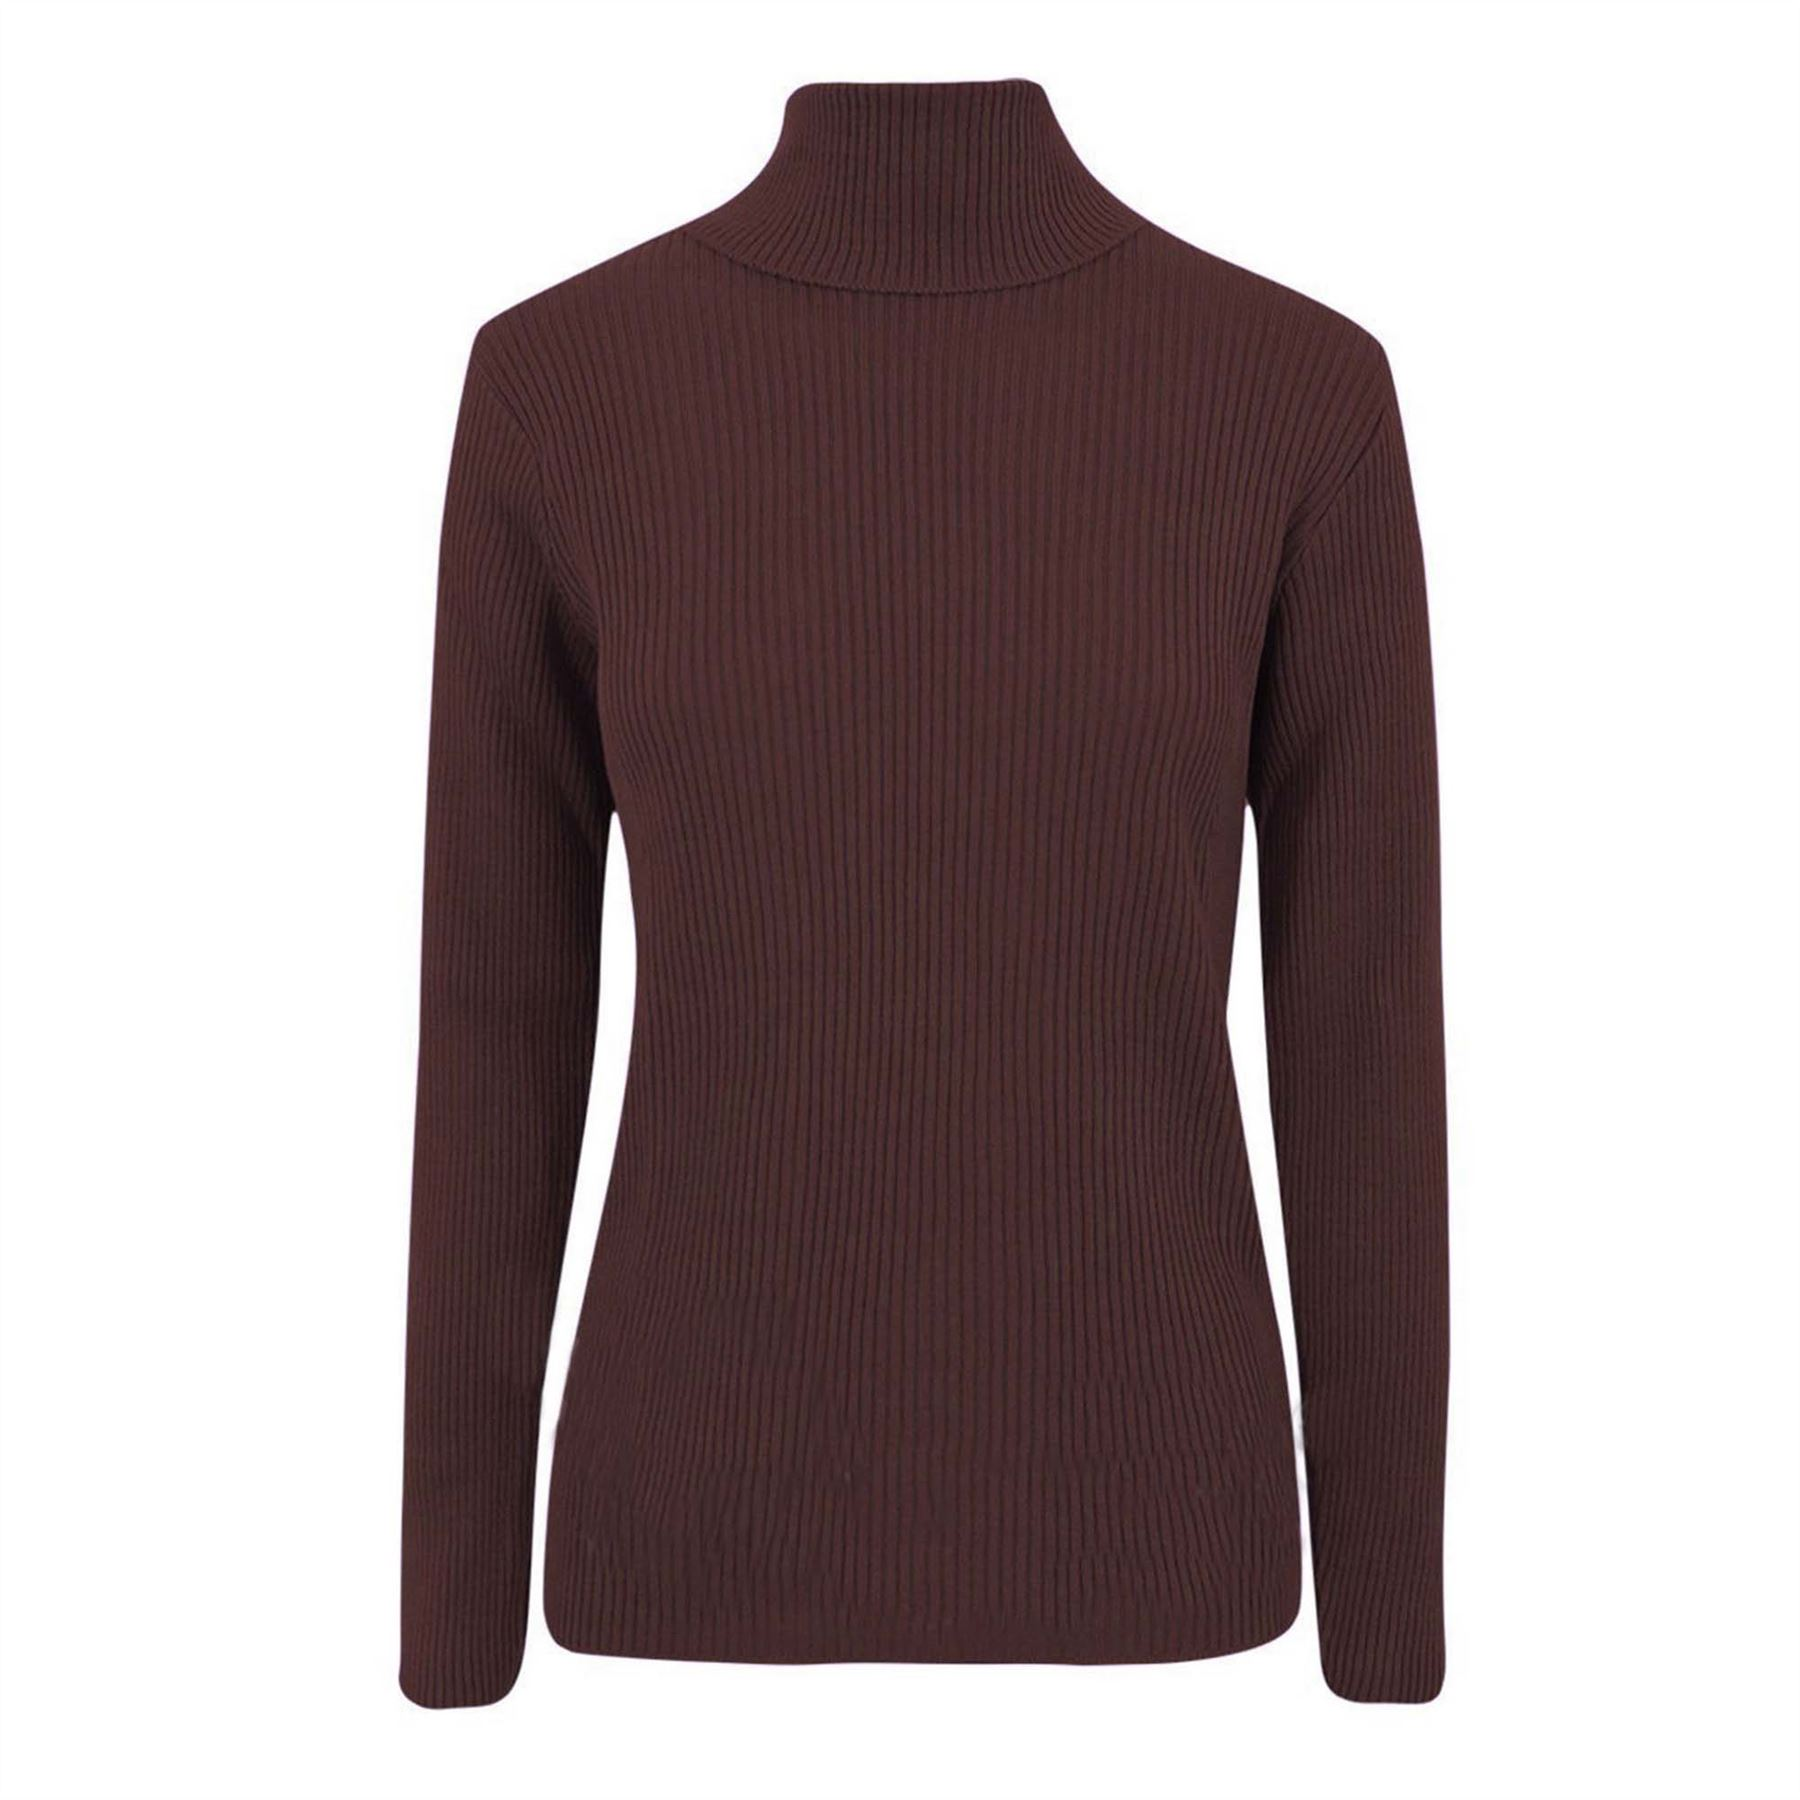 Wrap under this winter in a cosy jumper from Mountain Warehouse. Our womens jumper range includes cotton pullovers and stylish knitted jumpers.